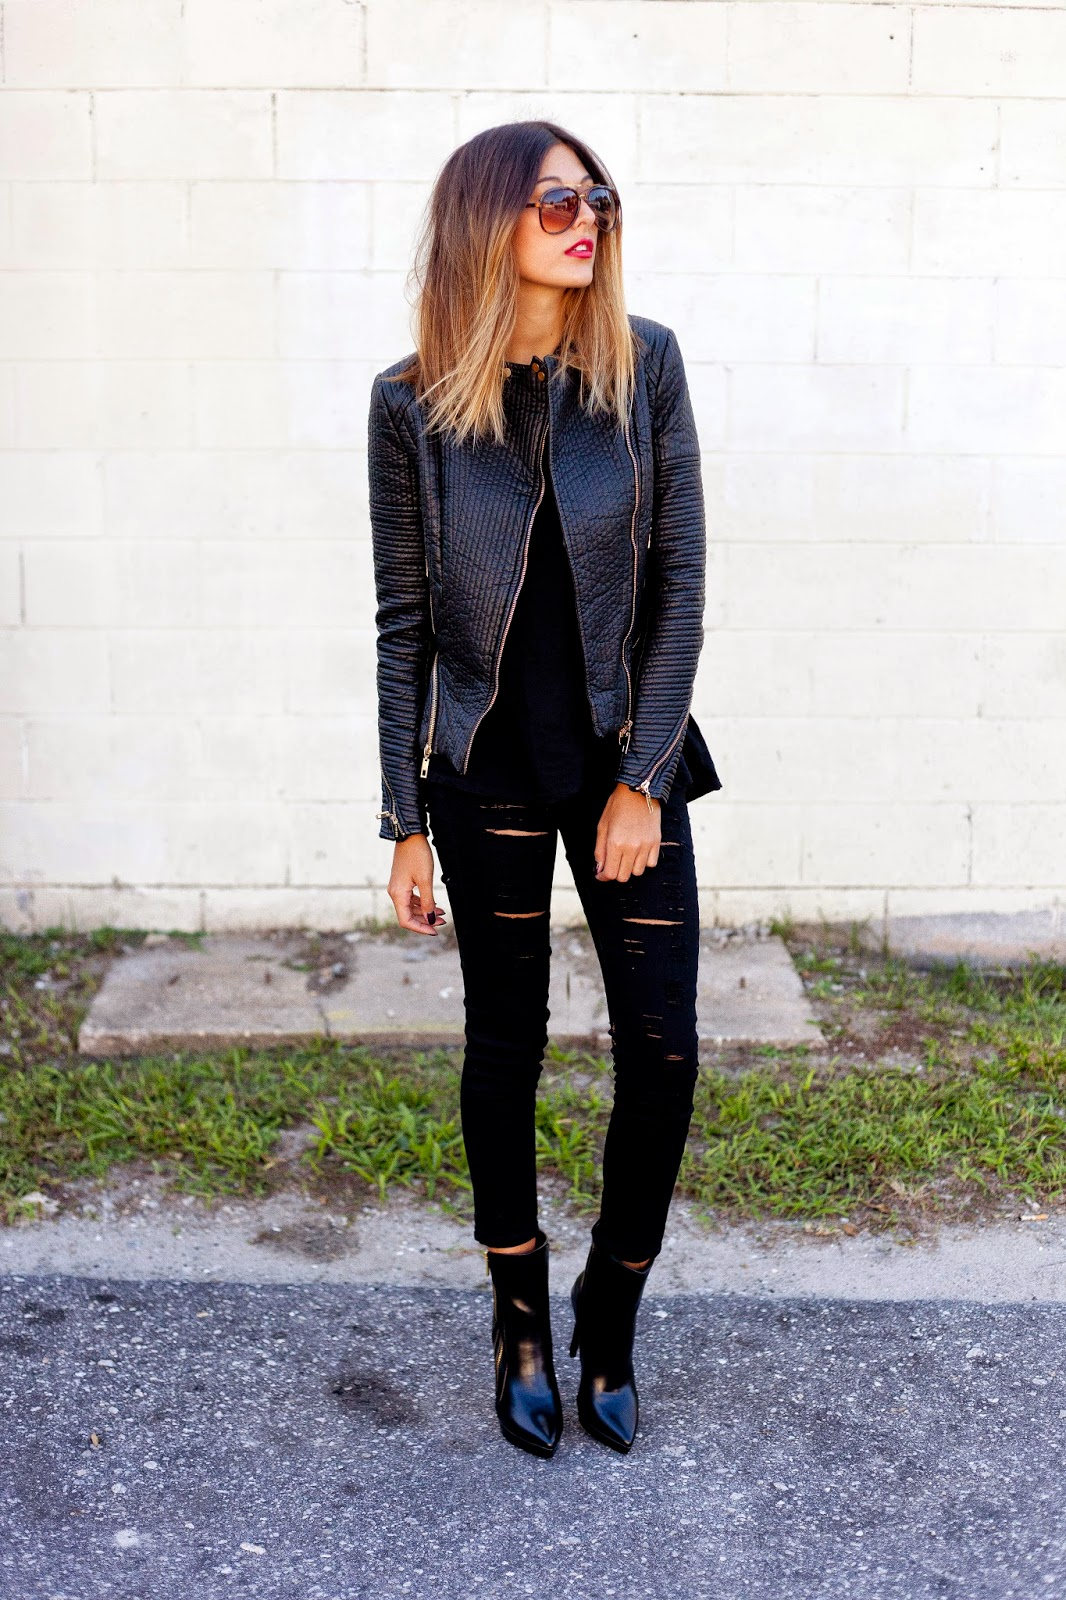 How To Wear Black Distressed Jeans